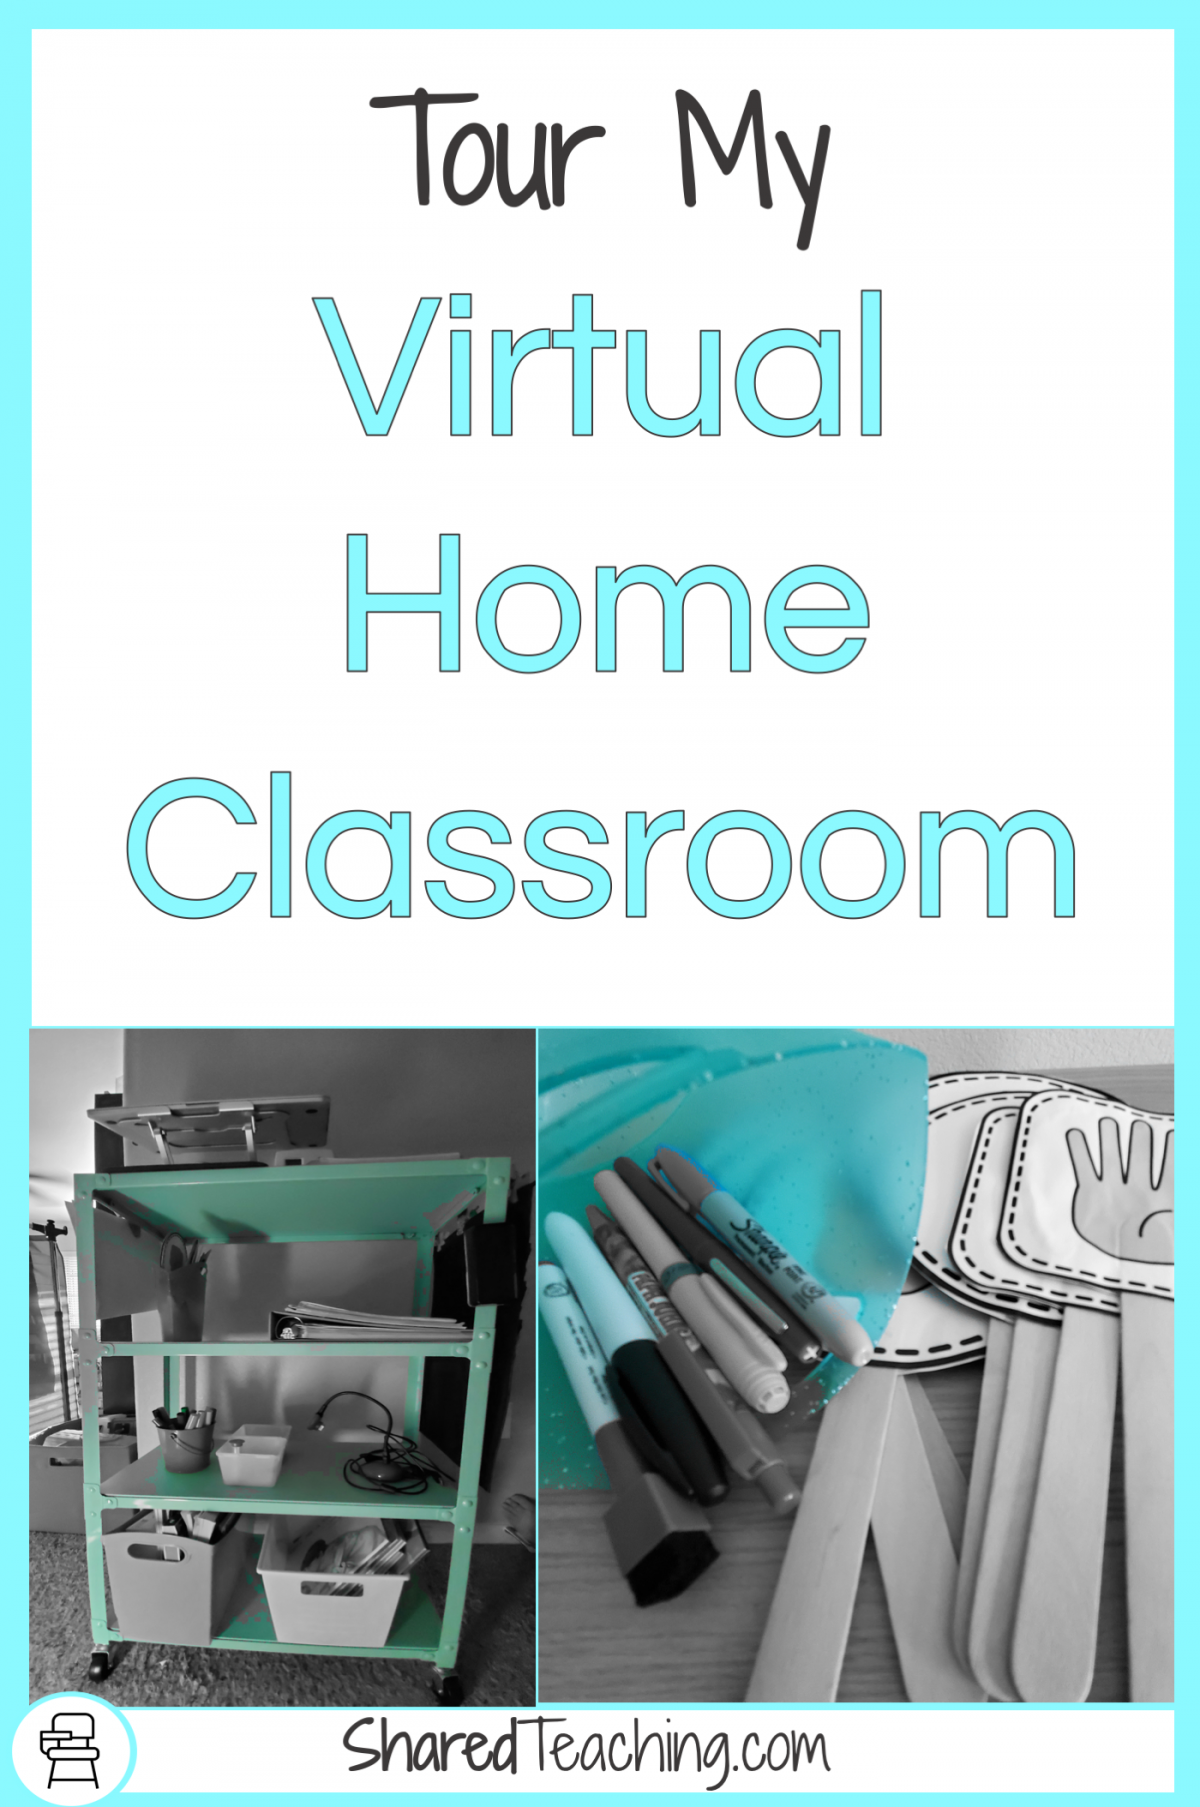 Tour My Virtual Home Classroom